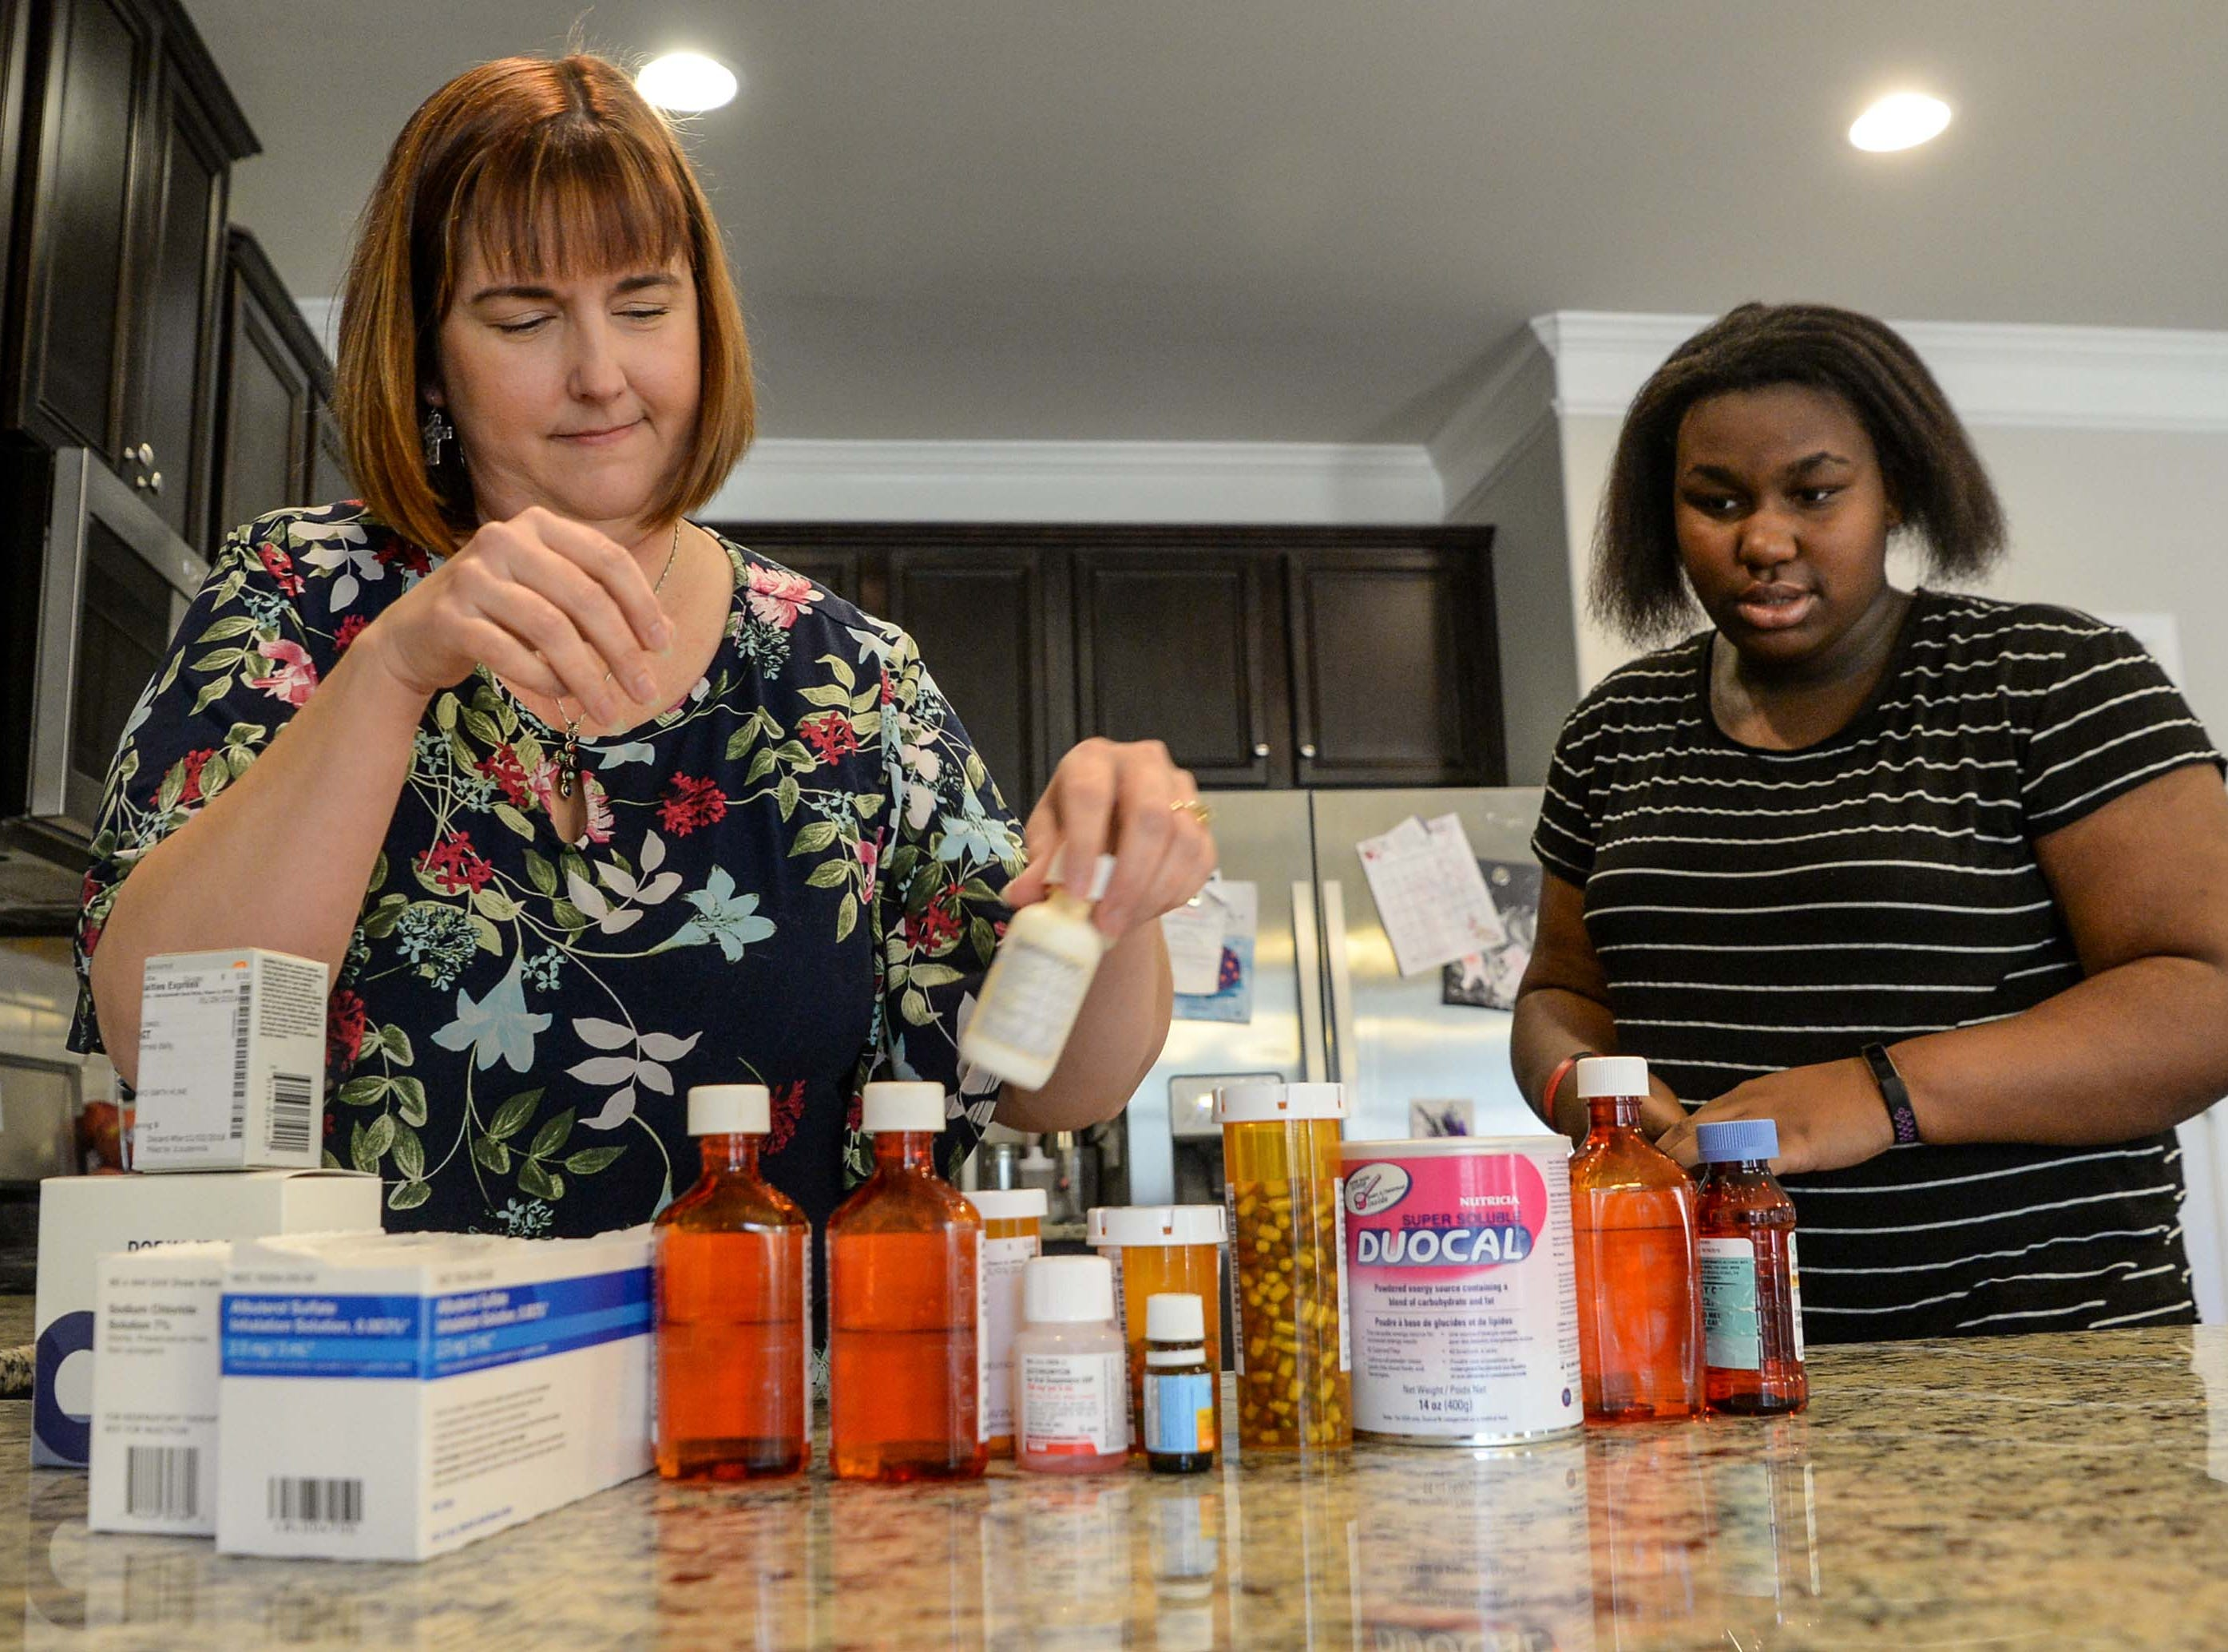 Ali Bragdon, left, of Anderson, CEO of Oasis of Hope foster care organization in Anderson, looks over medicines for two toddler foster children with daughter Erica Bragdon. Bragdon, one of the 39 children the couple has at some time cared for as foster parents, was adopted into the family.